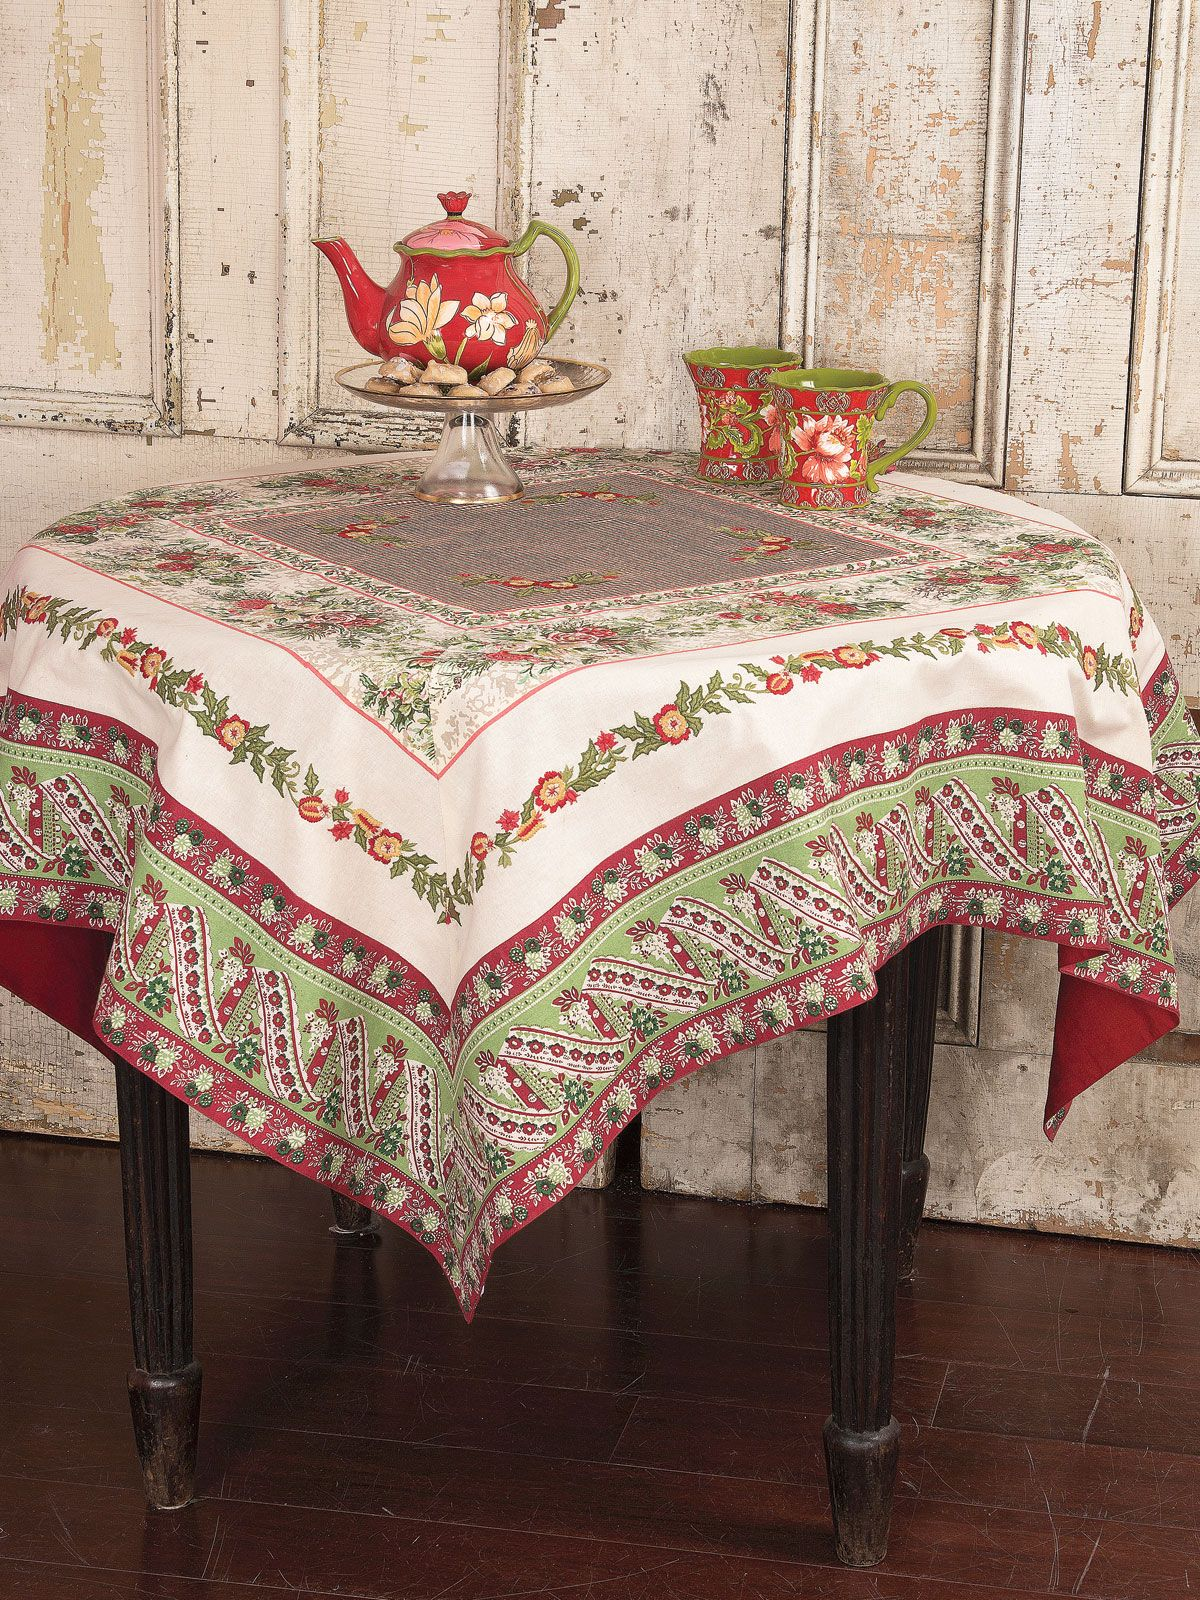 Tremendous Joyful Patchwork Tablecloth In 2019 For The Home Table Download Free Architecture Designs Terchretrmadebymaigaardcom